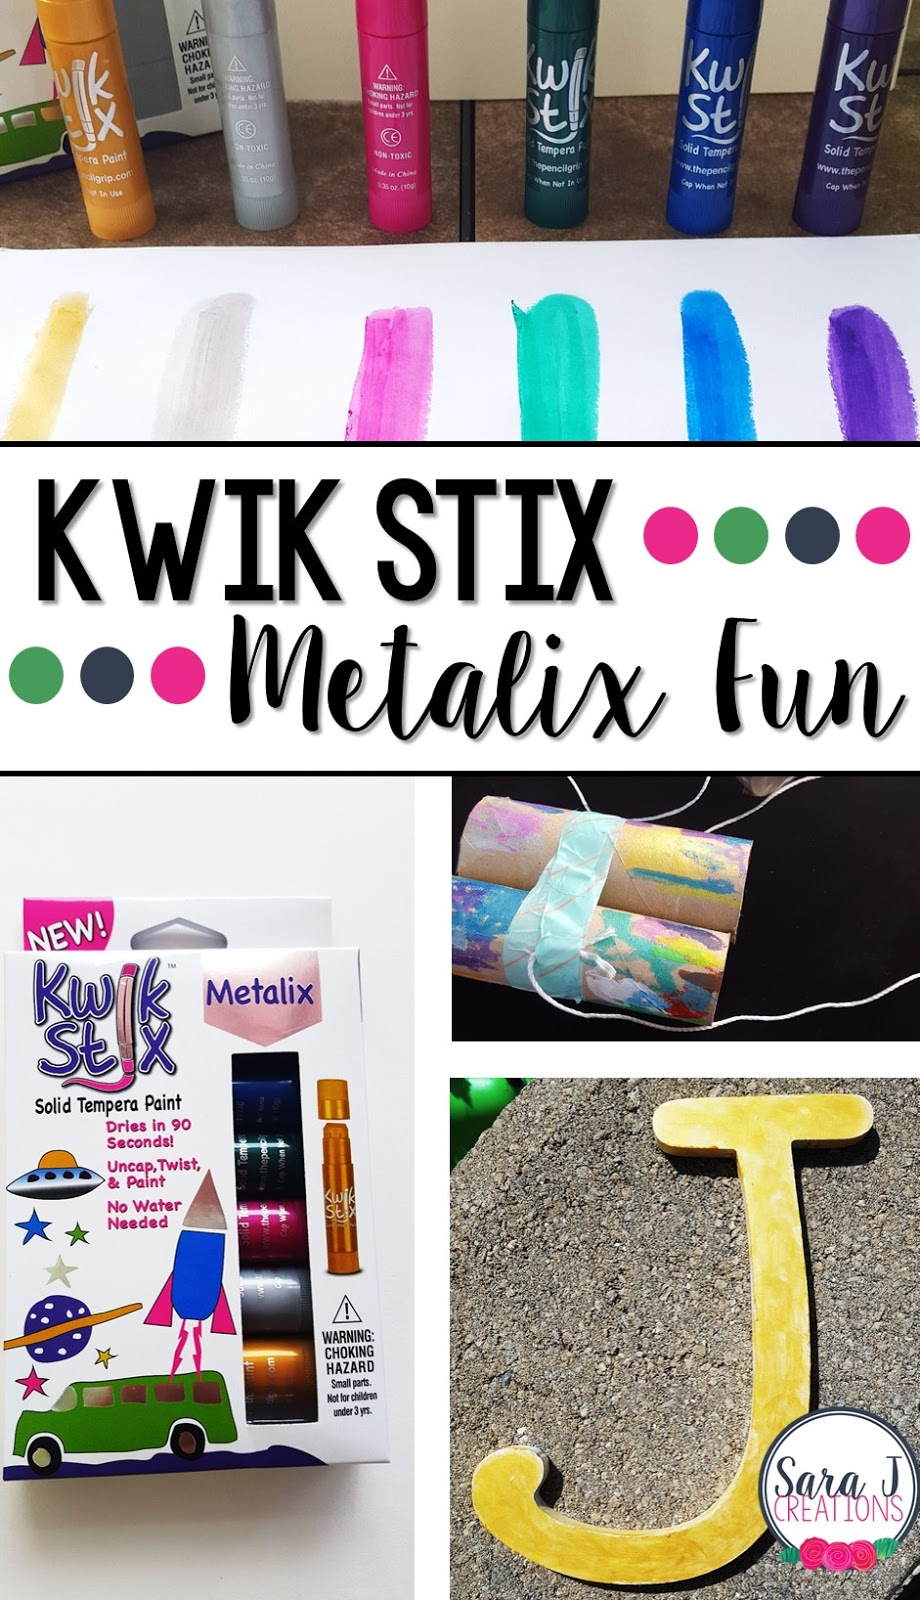 Kwik Stix are the best paint sticks for kids.  They are so easy to use and make art projects mess free.  They now come in metalix which means shimmery goodness!  The gold needs all the heart eyes!  Here's a few ideas for kids's projects and home decor projects with these awesome paint sticks.